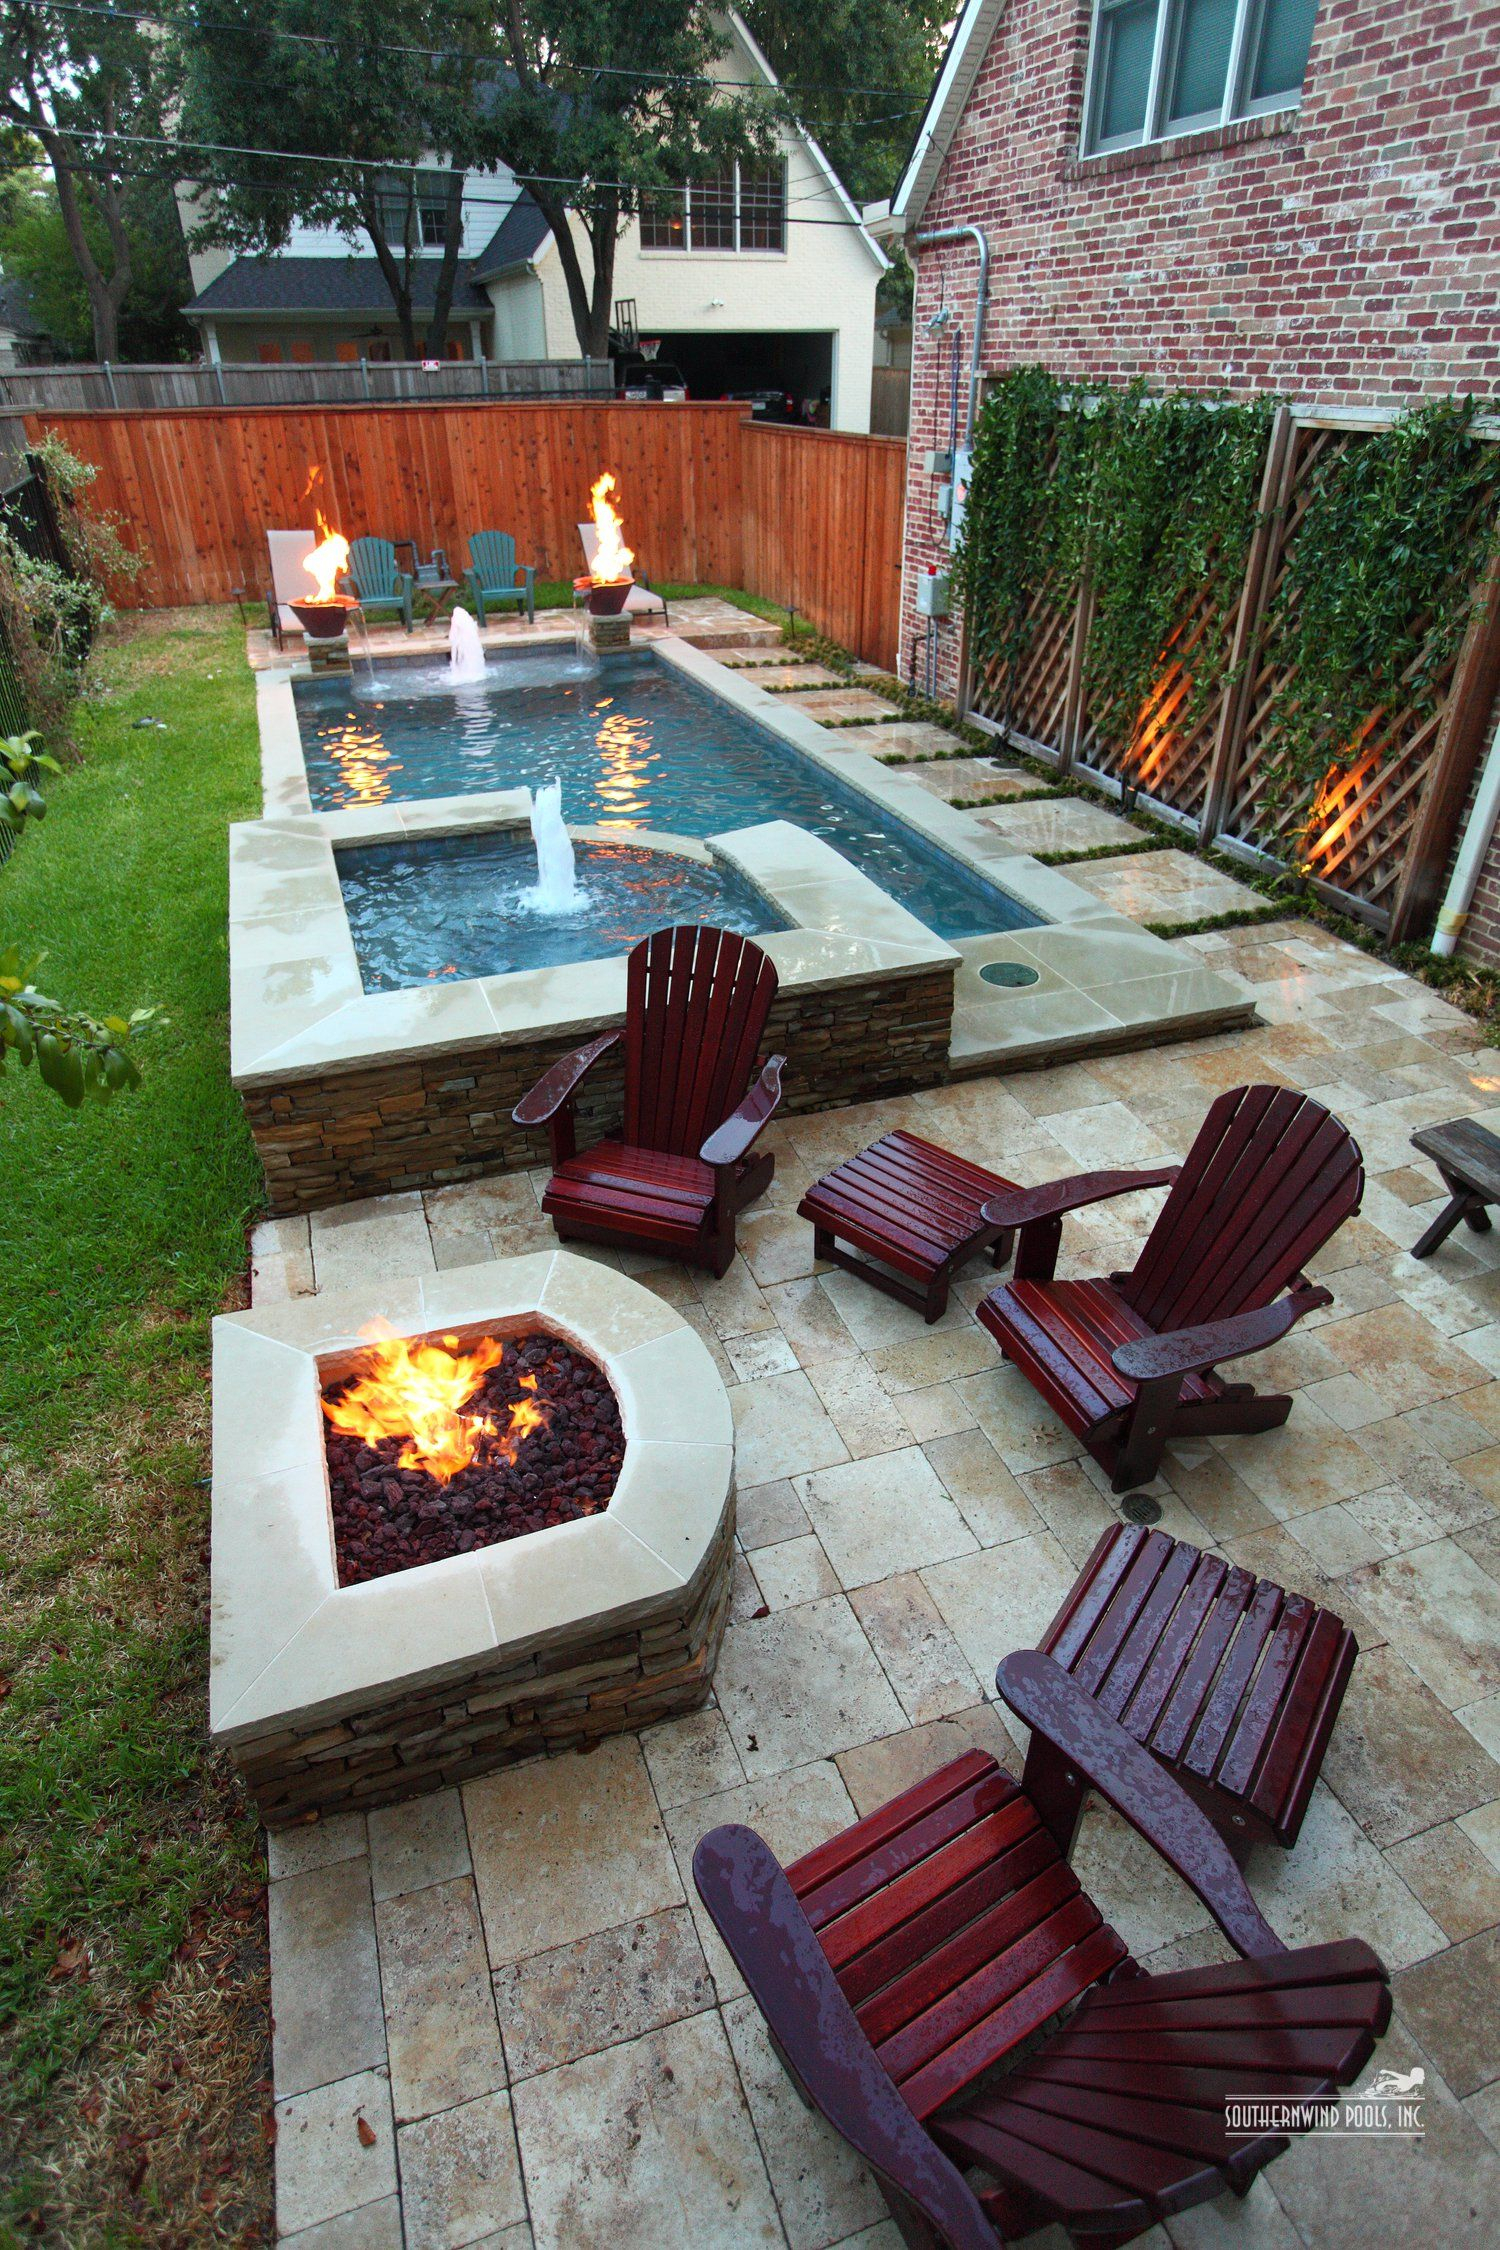 Narrow Pool With Hot Tub Firepit Great For Small Spaces In My inside Small Backyard With Pool Landscaping Ideas